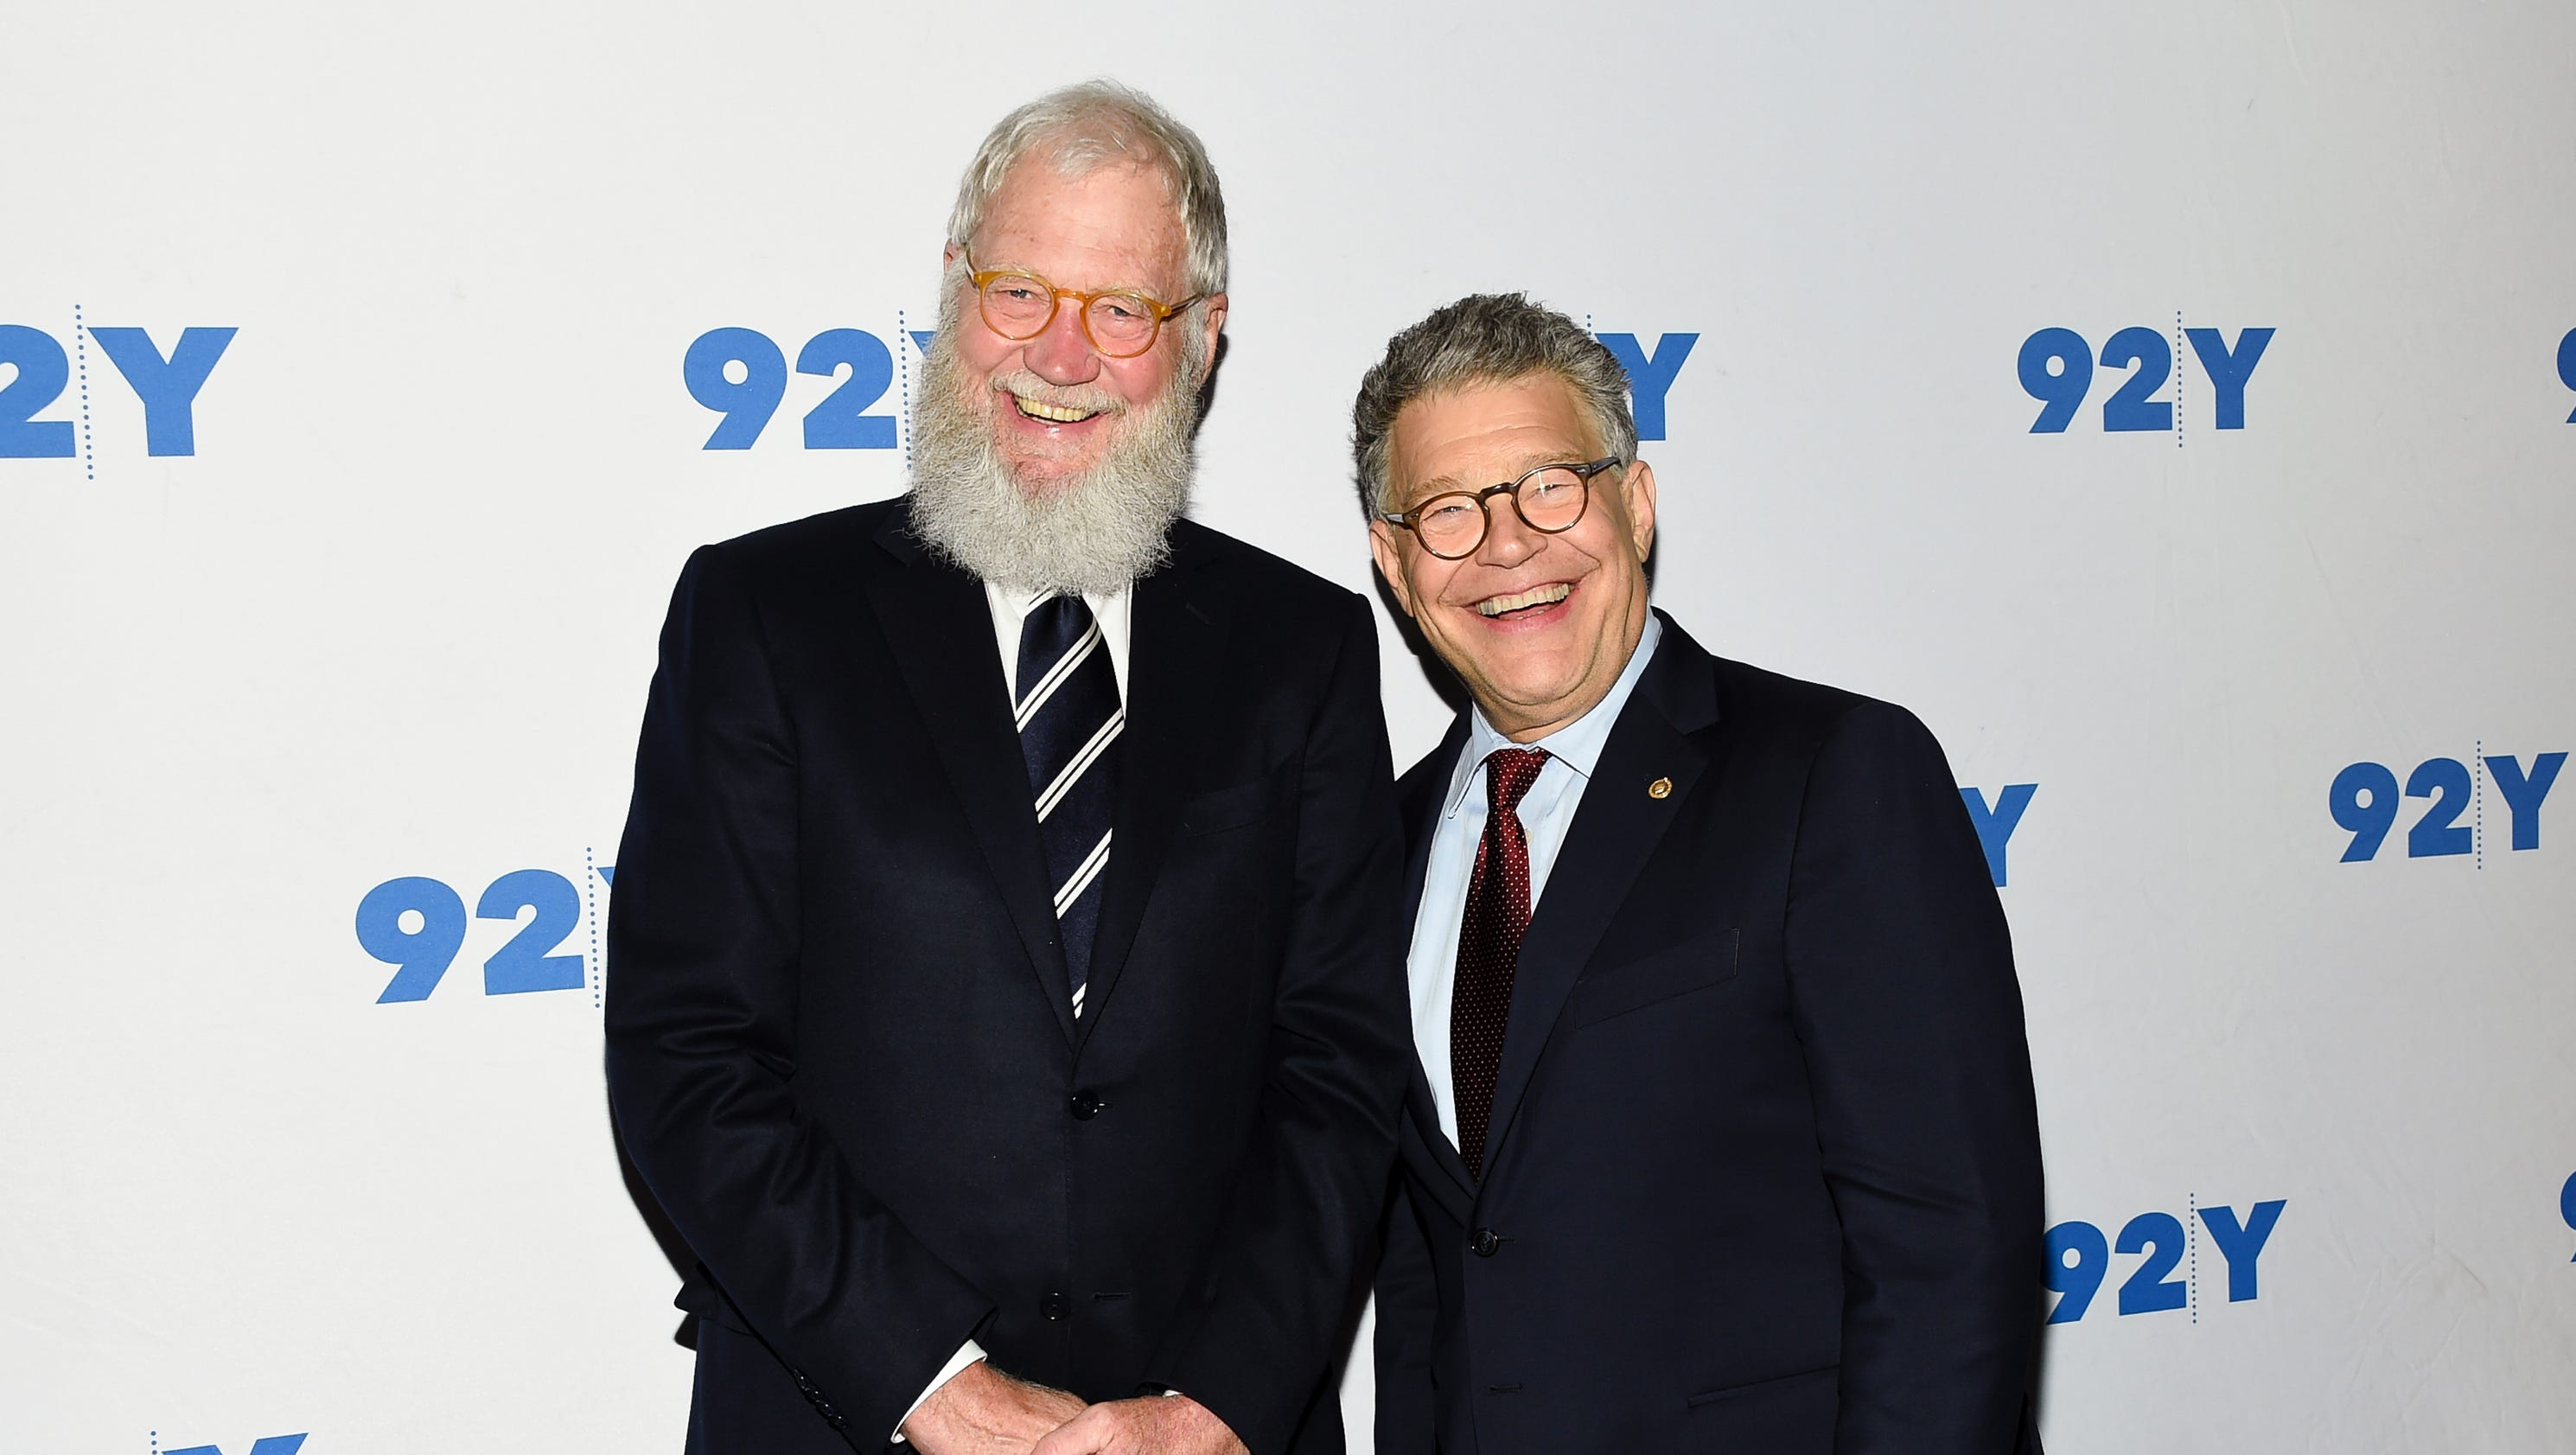 Al Franken 'will not appear substantially' when PBS broadcasts David Letterman tribute